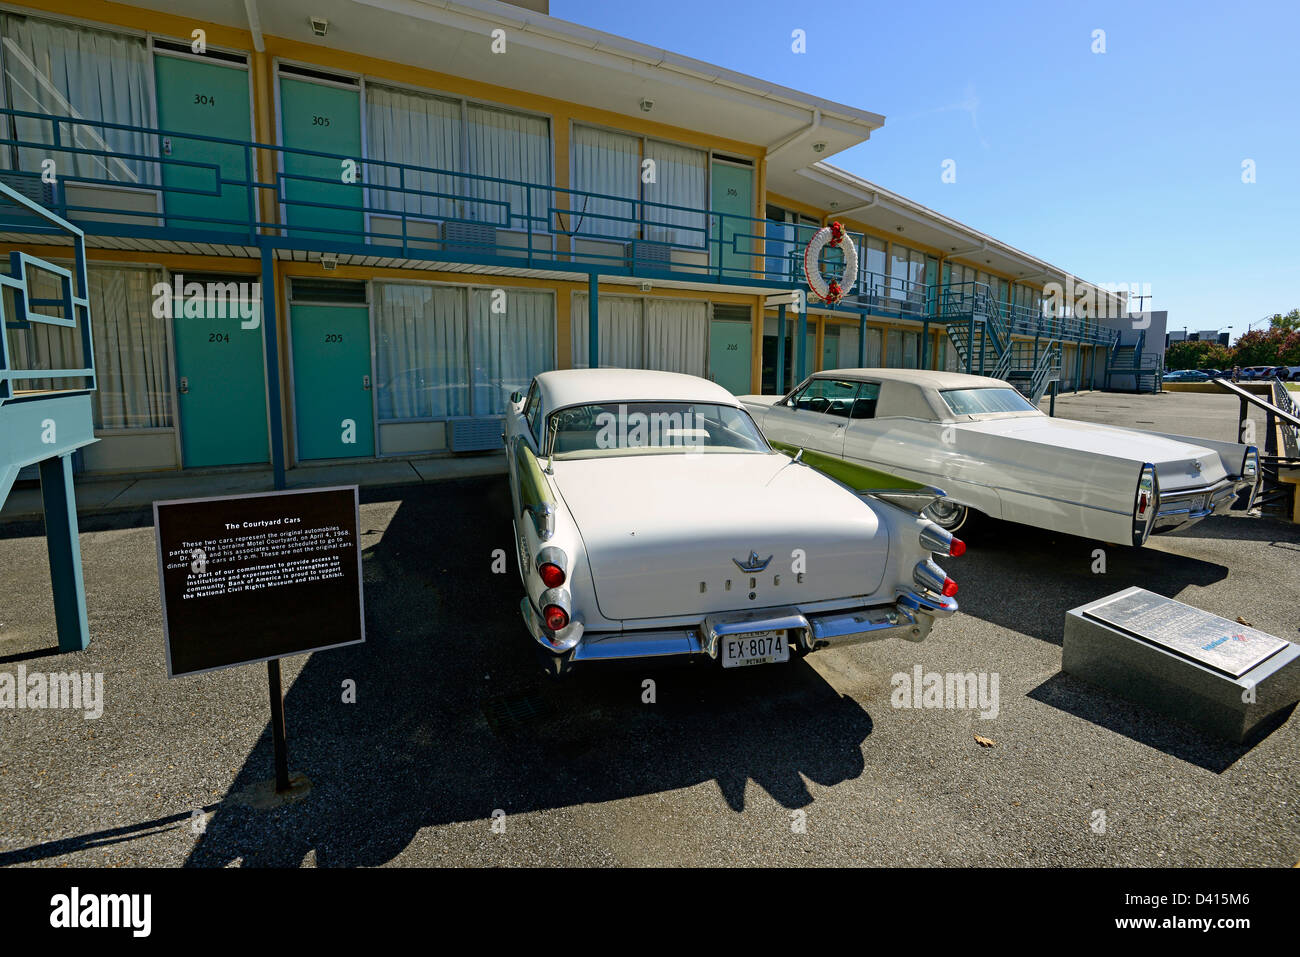 Courtyard Cars Lorraine Motel Martin Luther King Assassination Stock ...